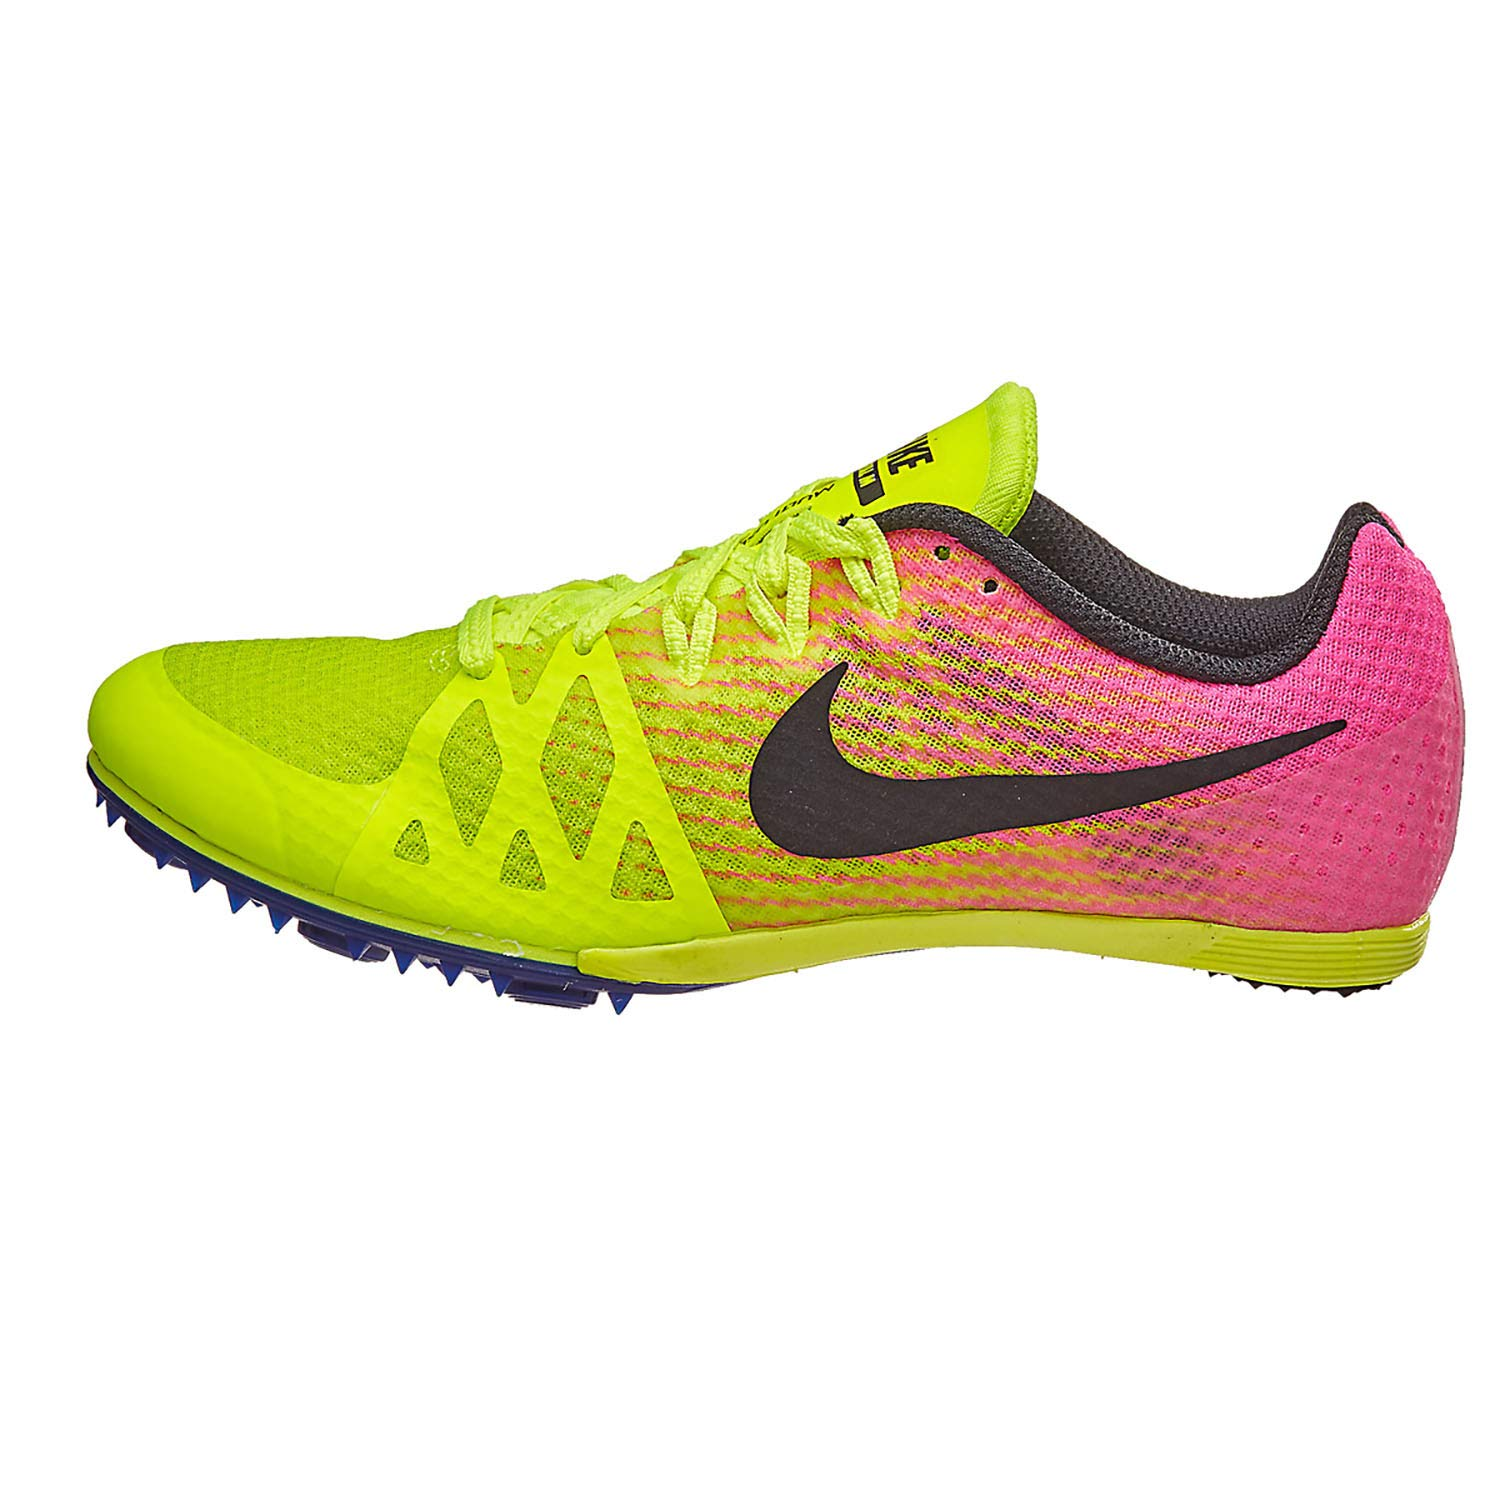   Nike Zoom Rival MD Mid Distance Track Spikes